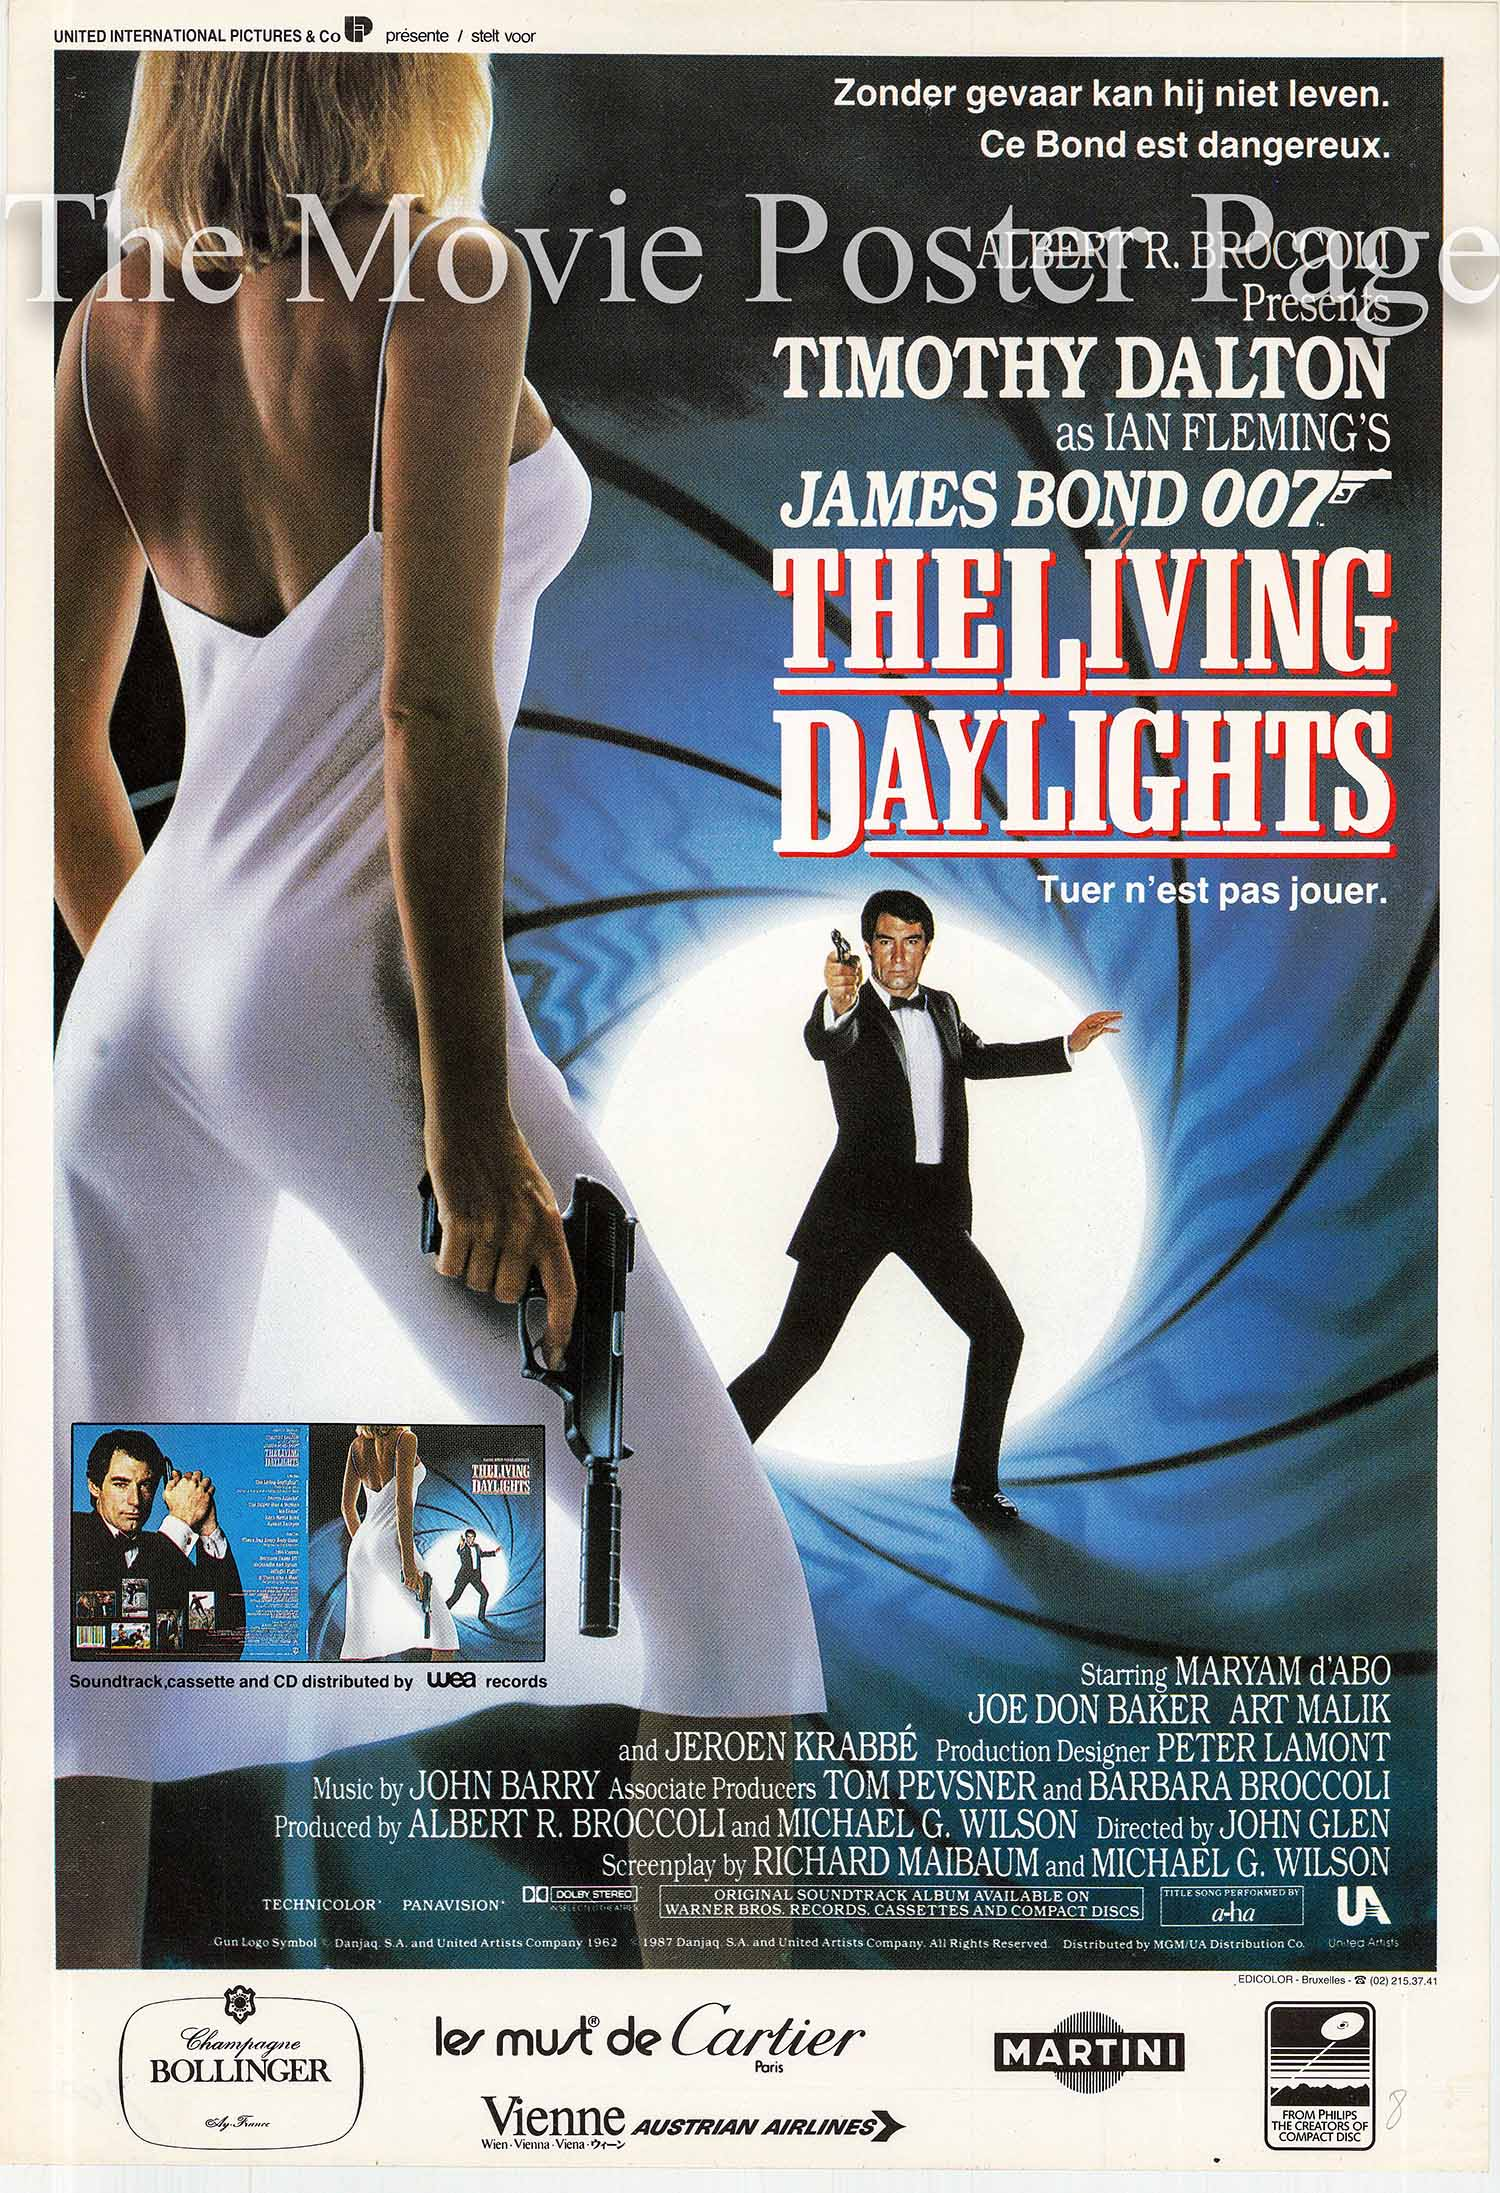 Pictured is an Belgian poster promotional poster for the 1987 John Glen film The Living Daylights starring Timothy Dalton as James Bond.